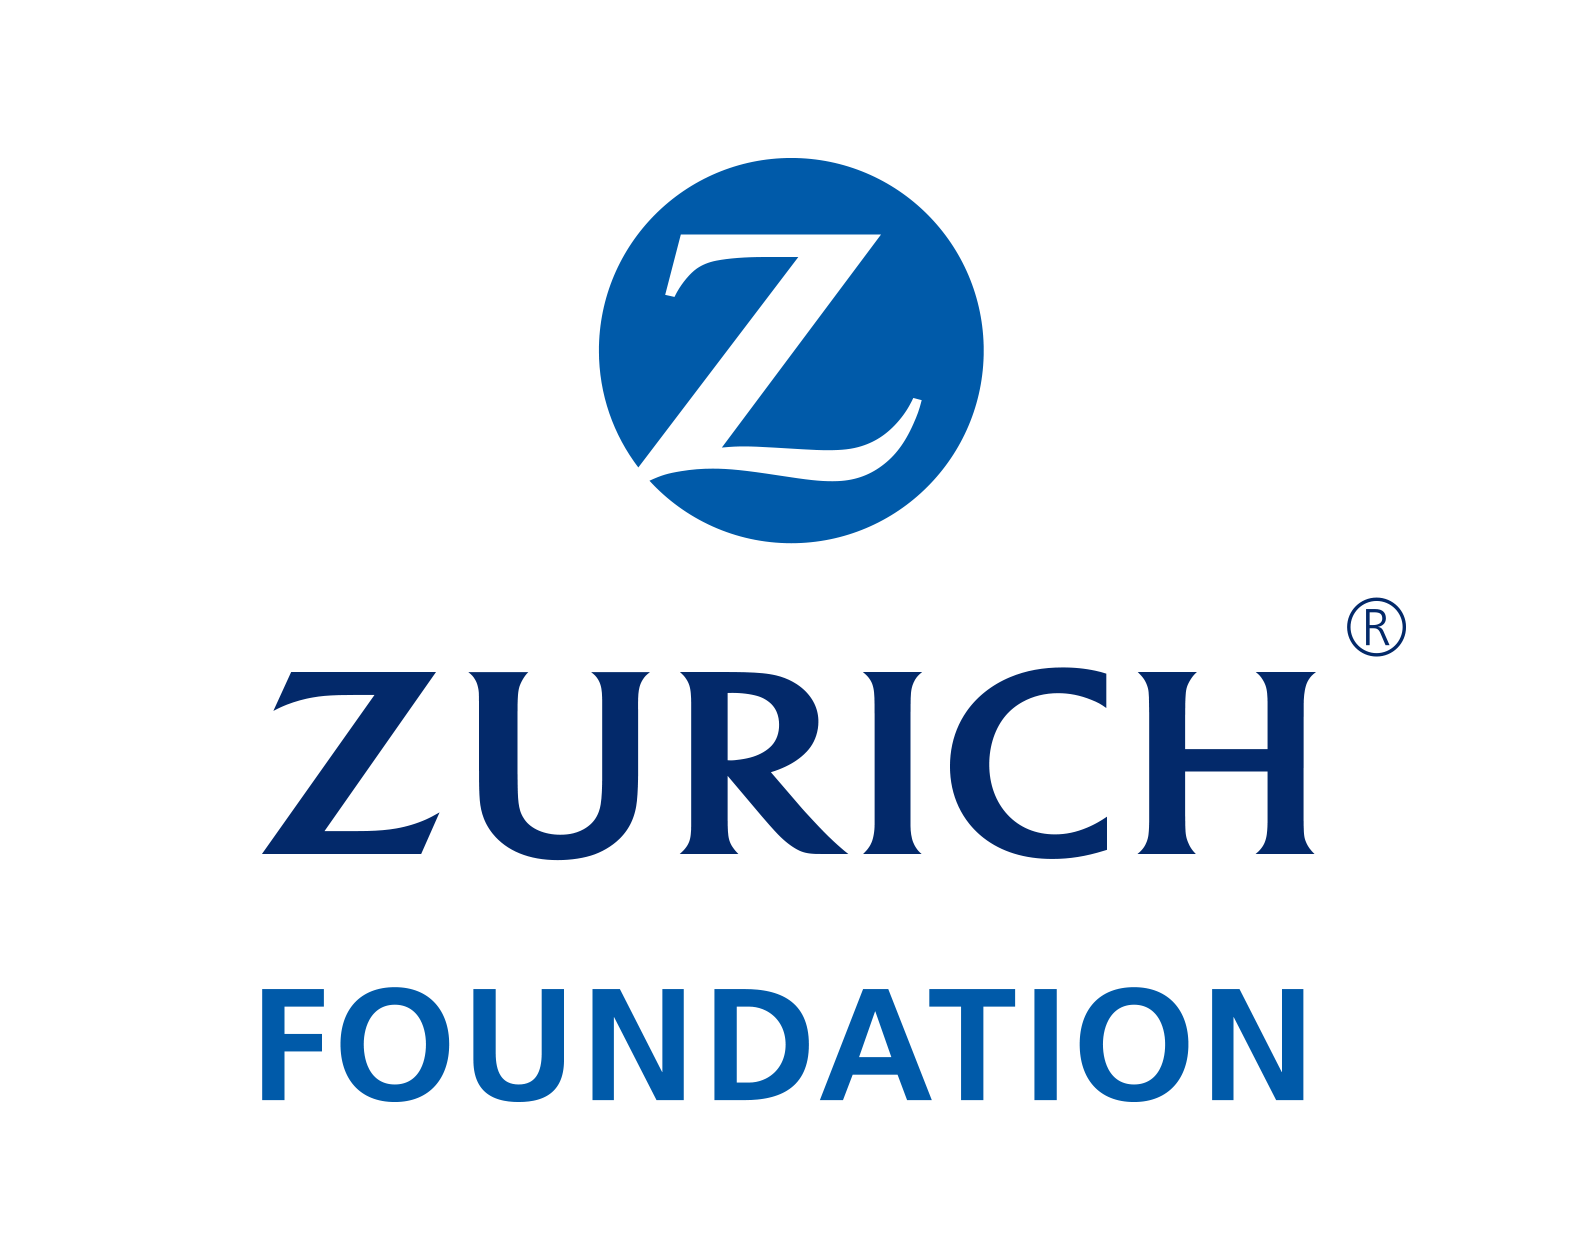 Zurich Foundation.png